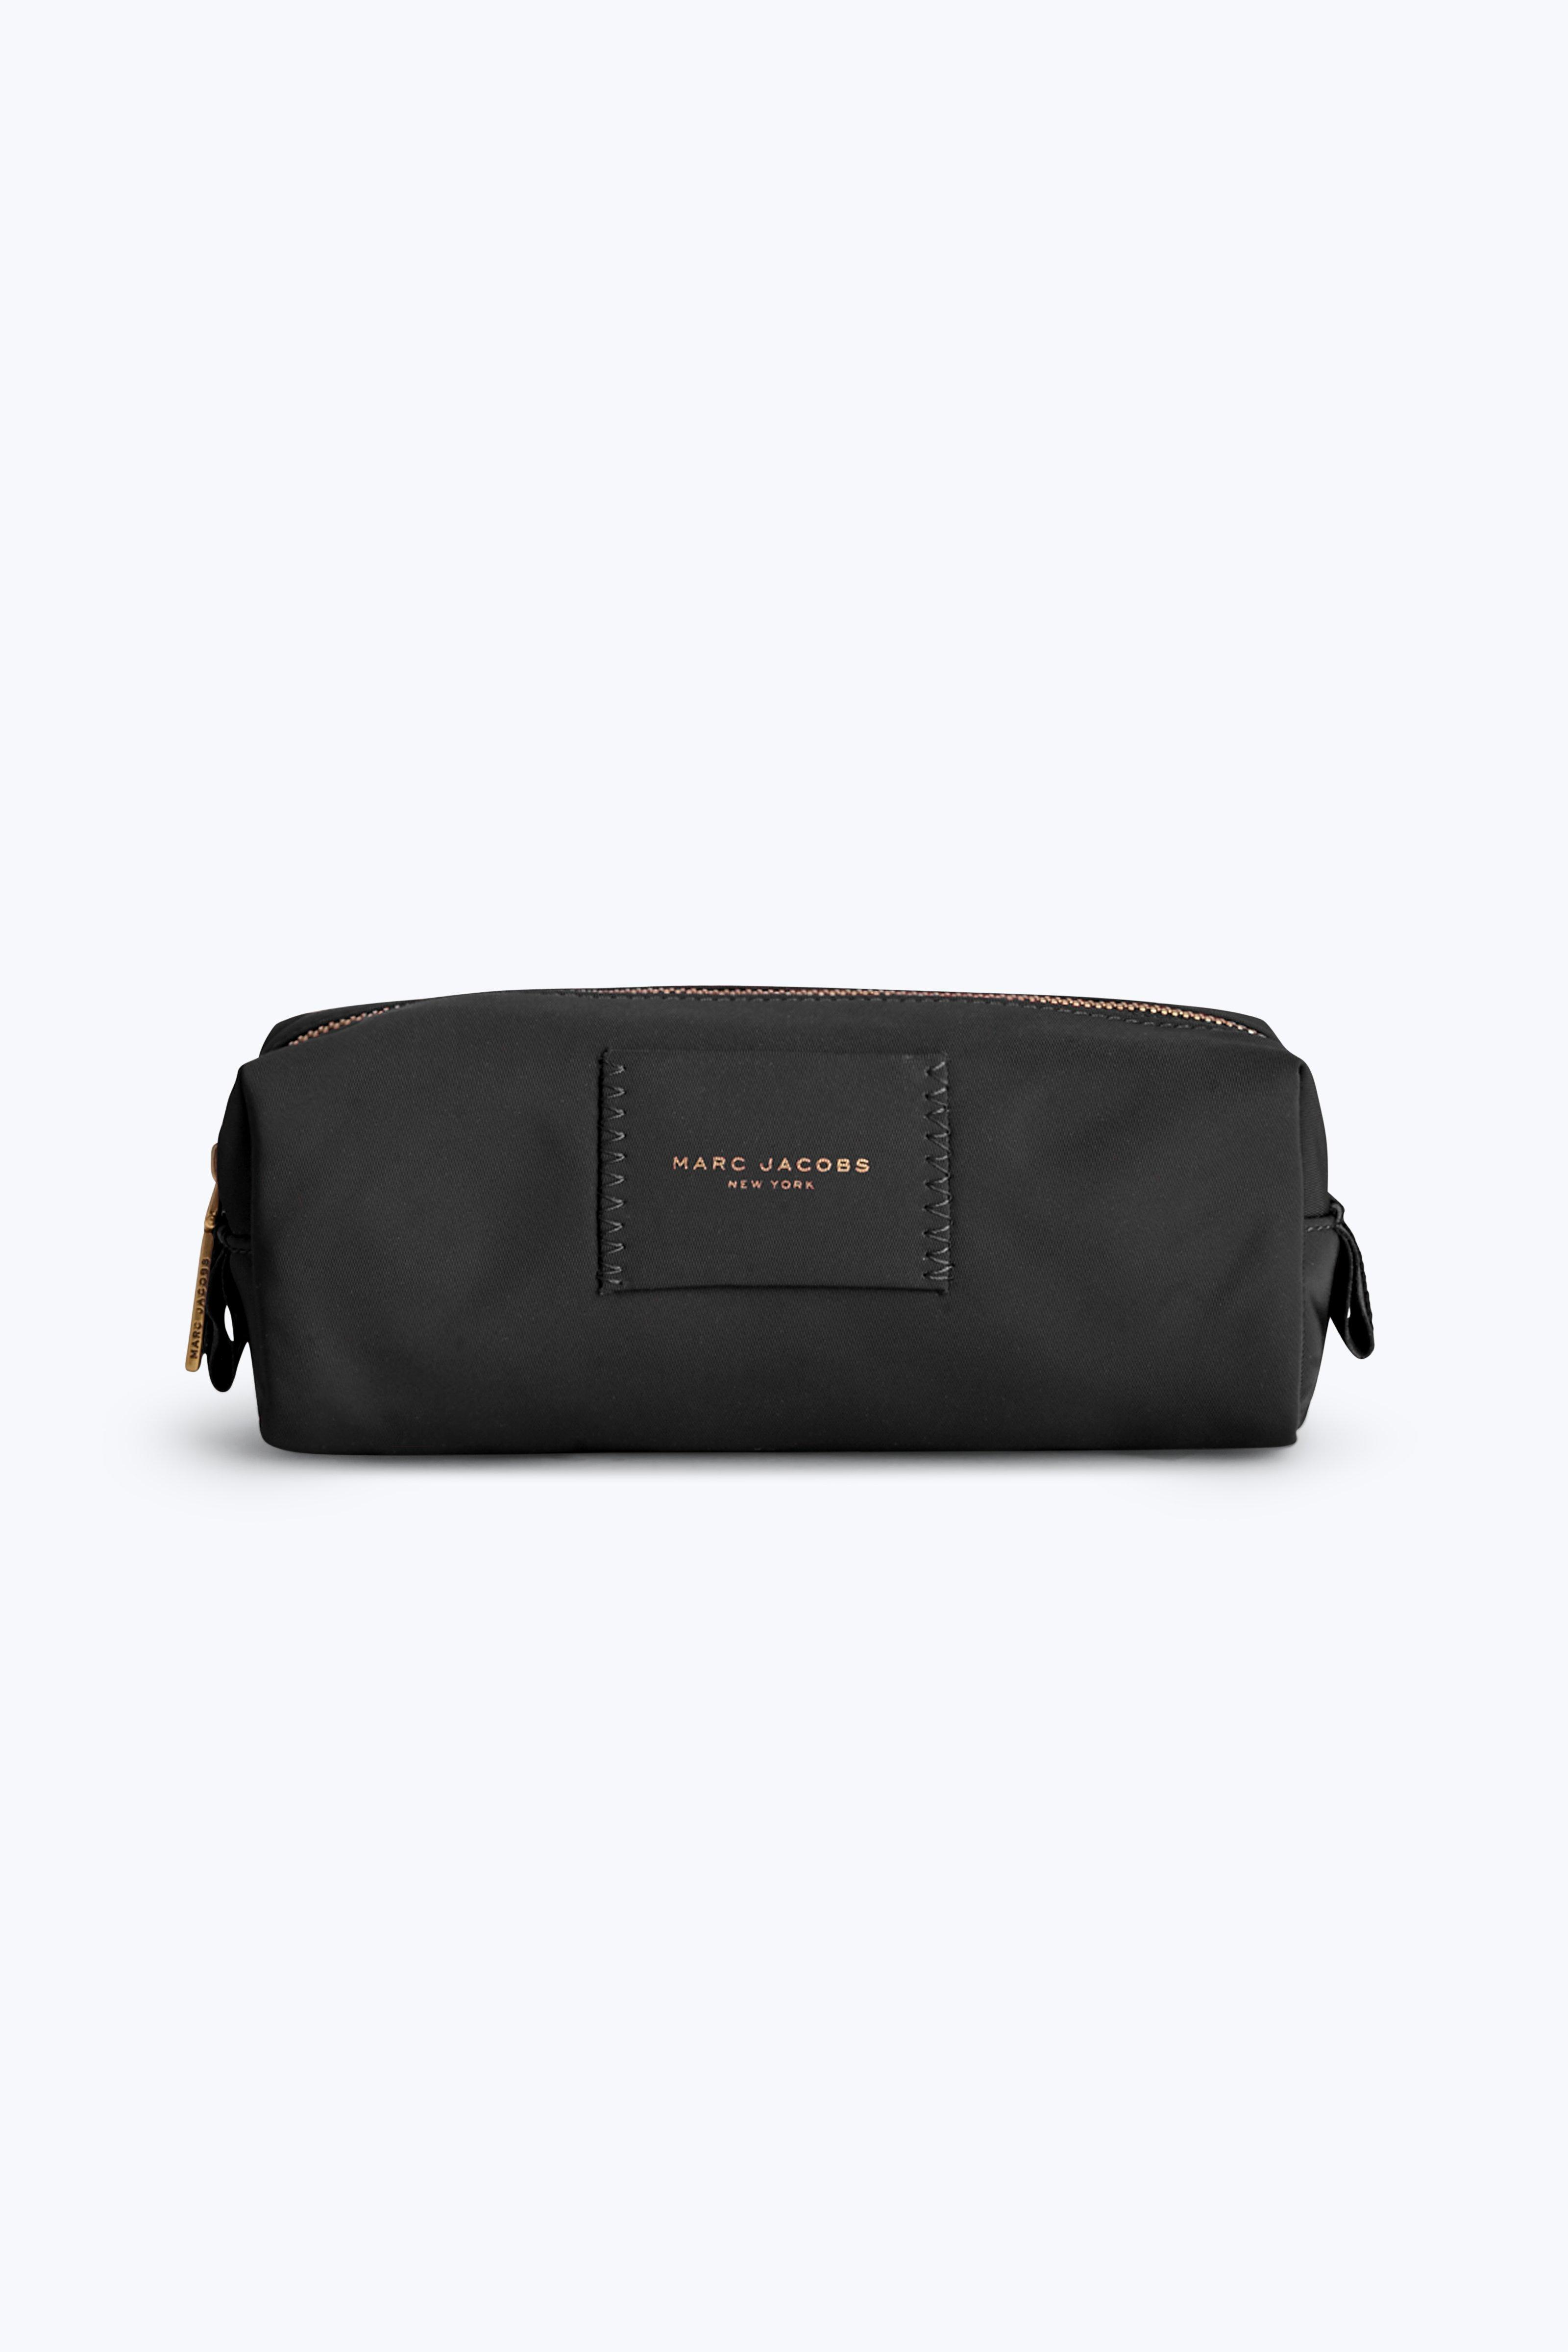 Marc Jacobs Nylon Knot Narrow Cosmetic Case In Black